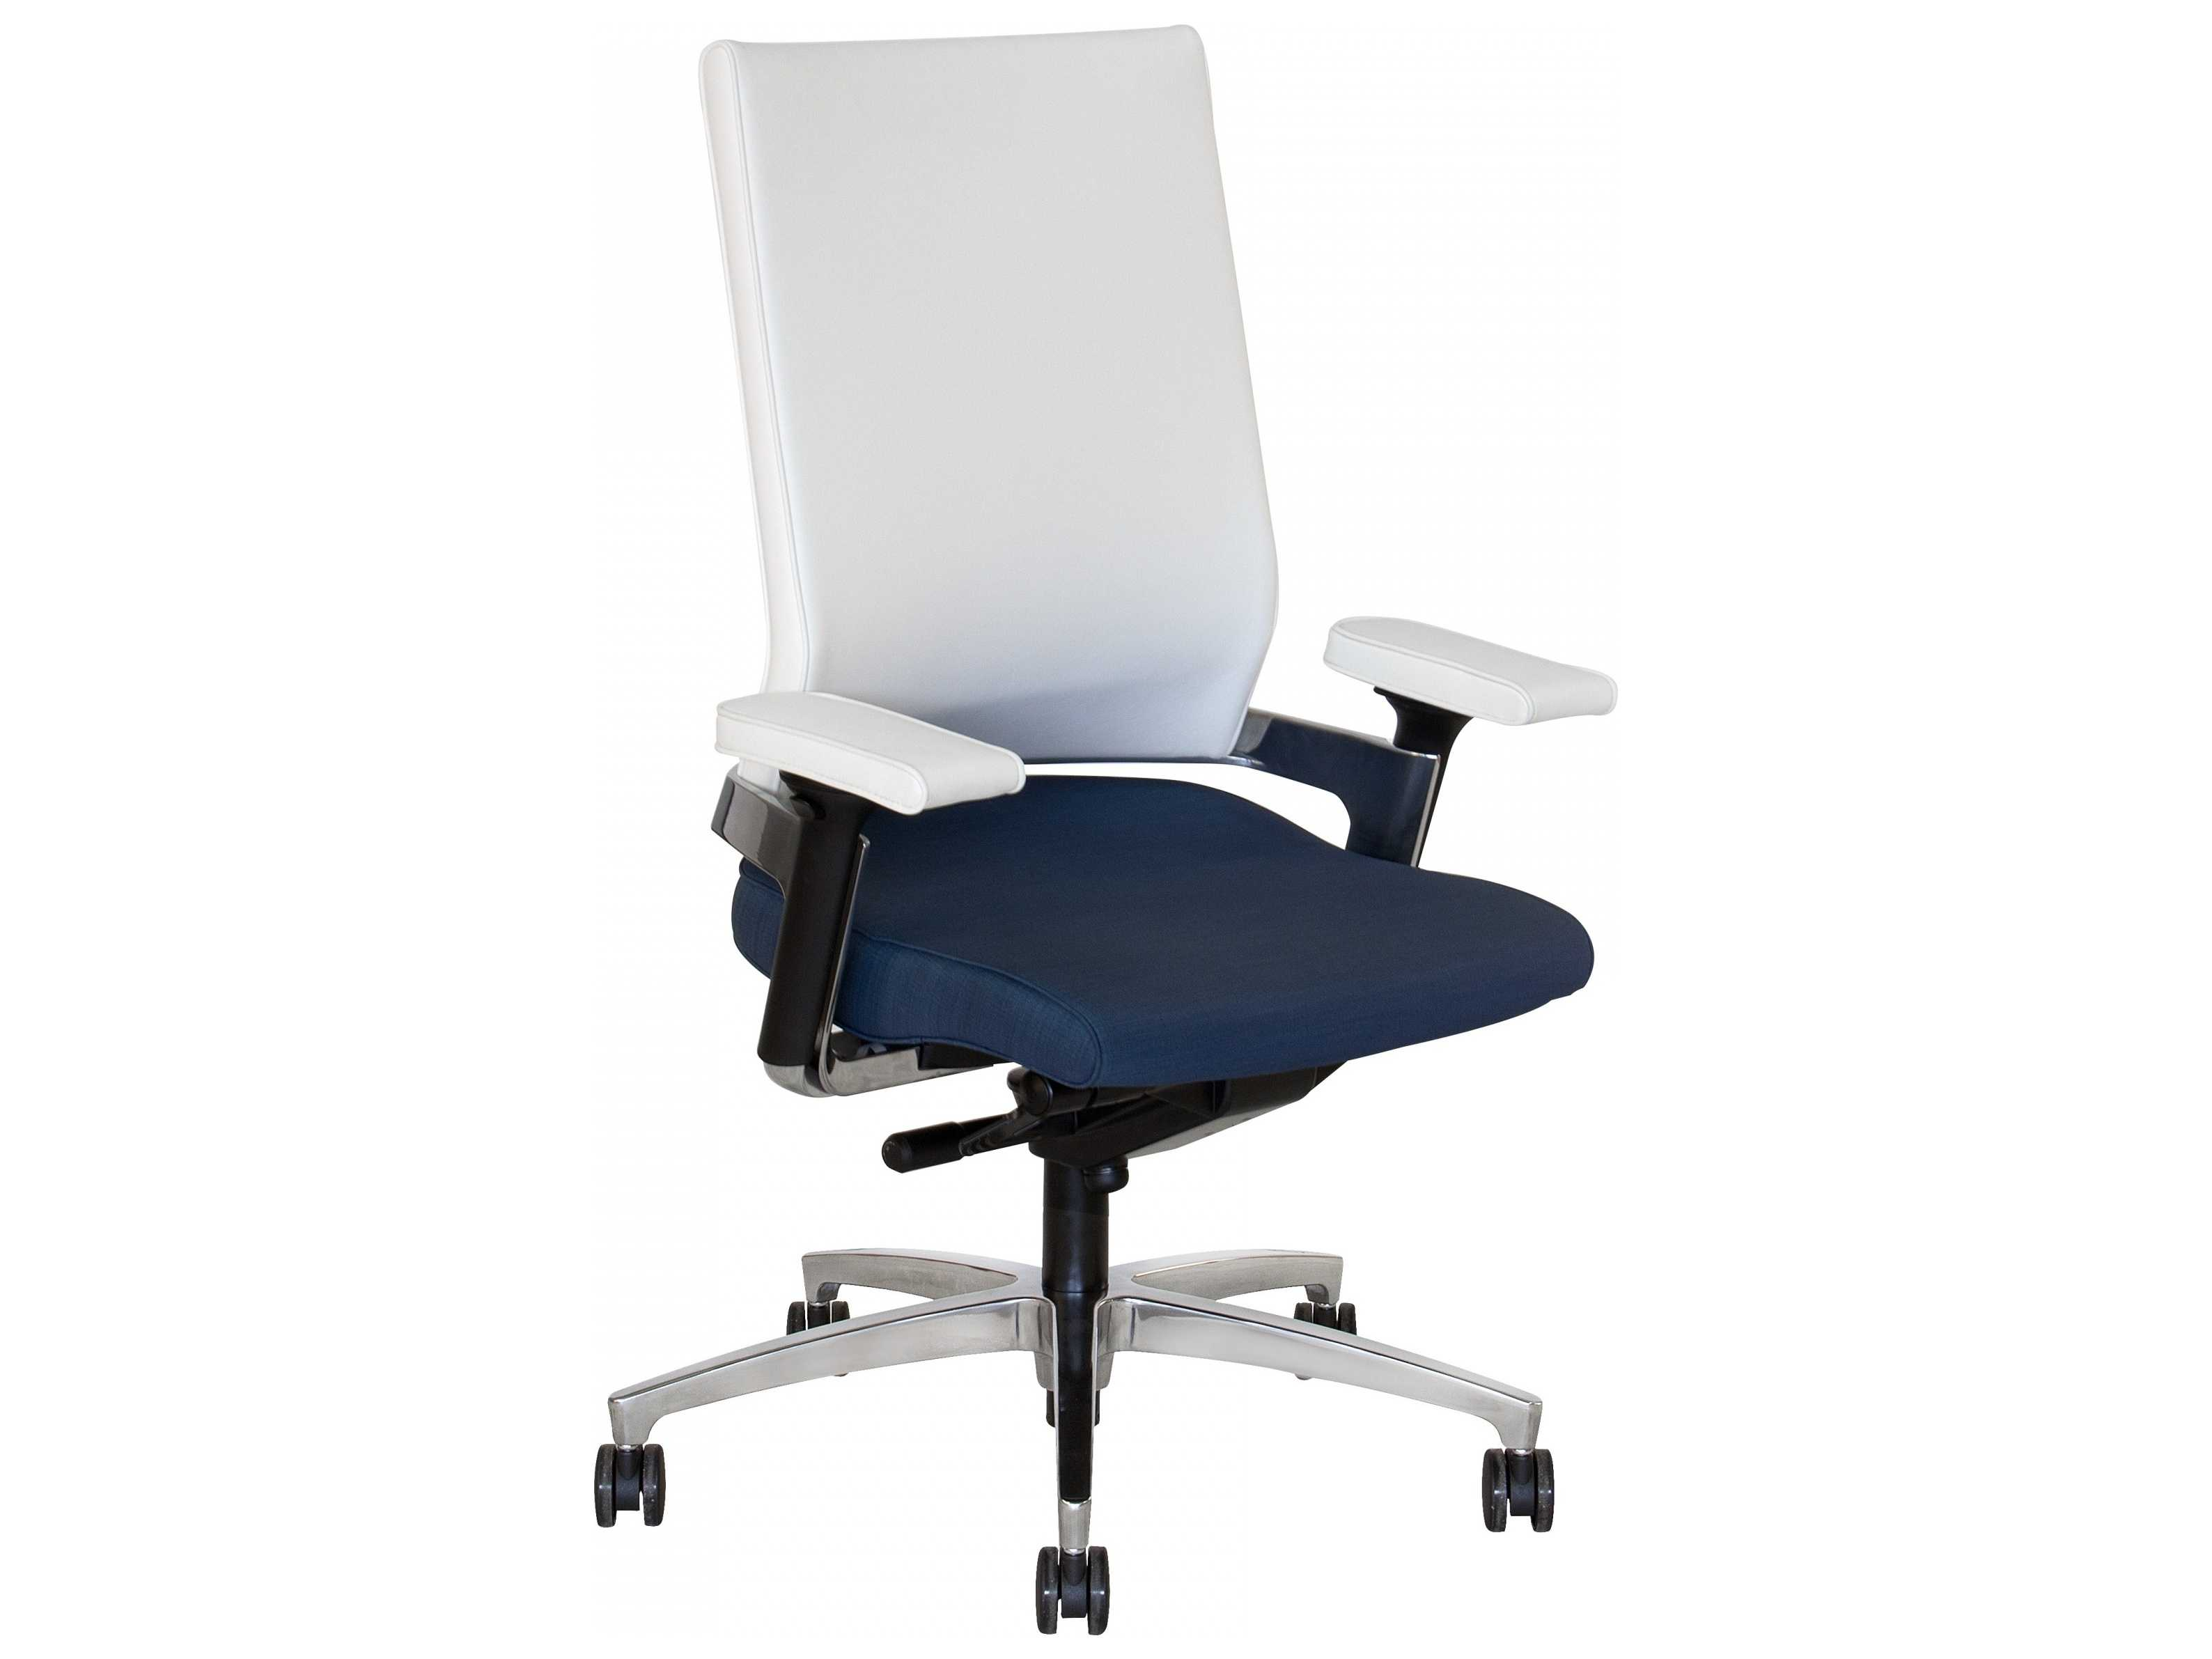 ergonomic chair description directors chairs for sale dauphin lacinta executive mid back daulc1020